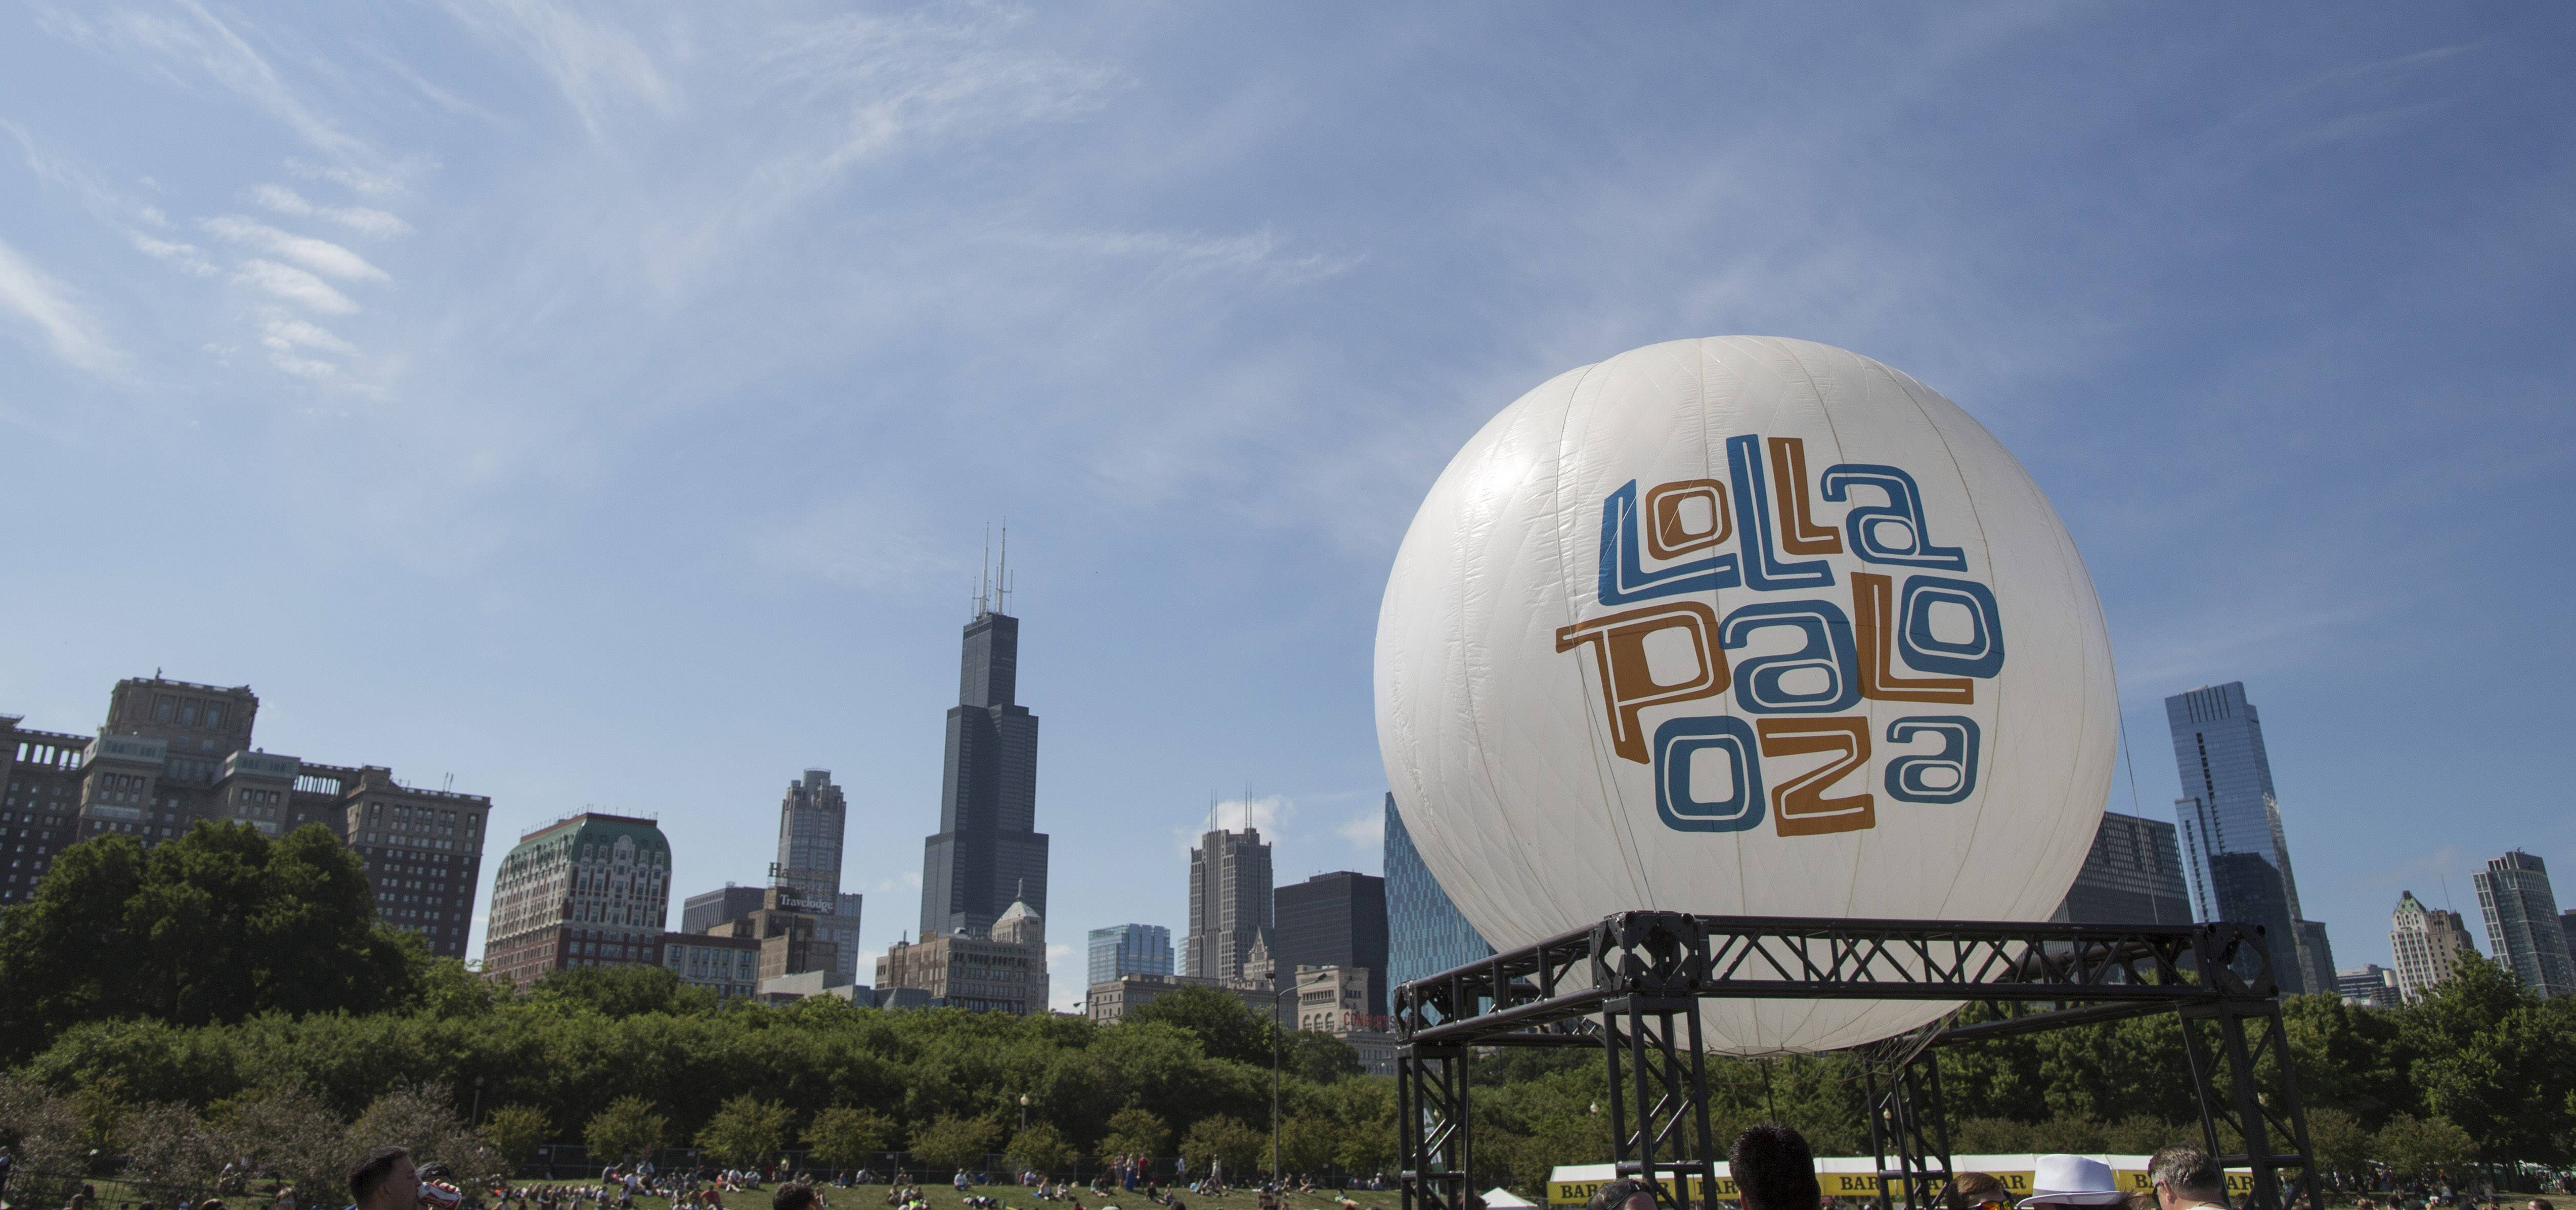 A Lollapalooza balloon floats between stages at the Lollapalooza Festival in Chicago. The 2014 season of music festivals is upon us. It's easy to get caught up in the excitement and spend a bundle, on everything from tickets to accommodations to bottles of water. But with a little foresight, it's easy to cut down on excess spending and enjoy the music and excitement without breaking the bank.